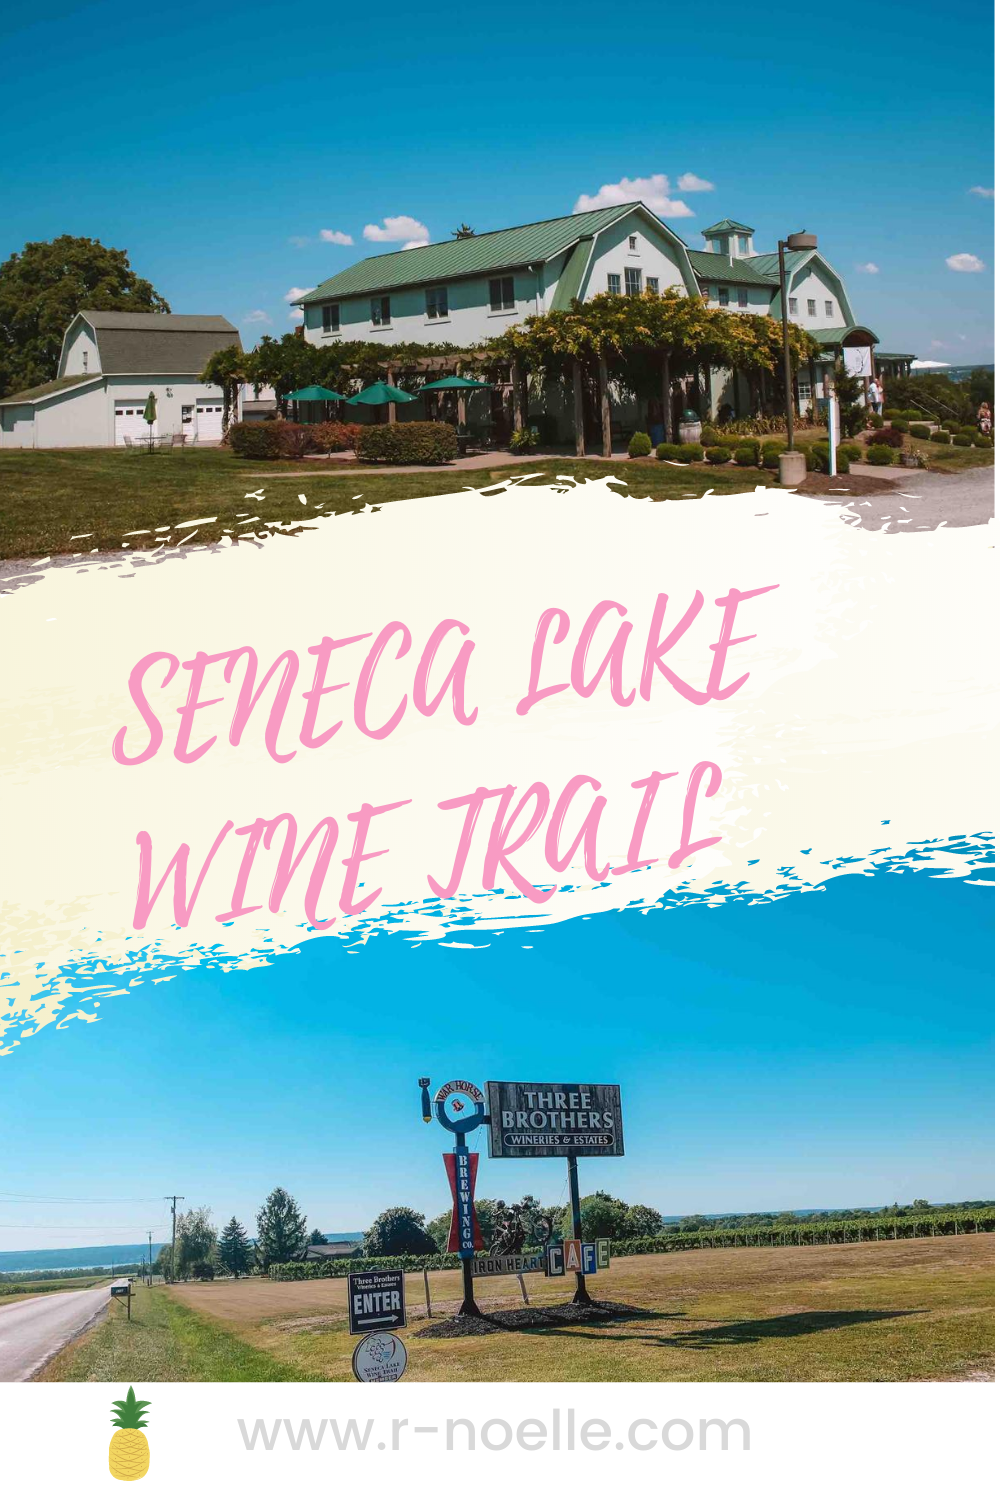 Seneca Lake is the deepest lake in the Finger Lakes. This is part of the Finger Lake region in New York. Three Brothers Wineries & Estates and Fox Run Winery are amazing wineries. The vineyard are stunning!